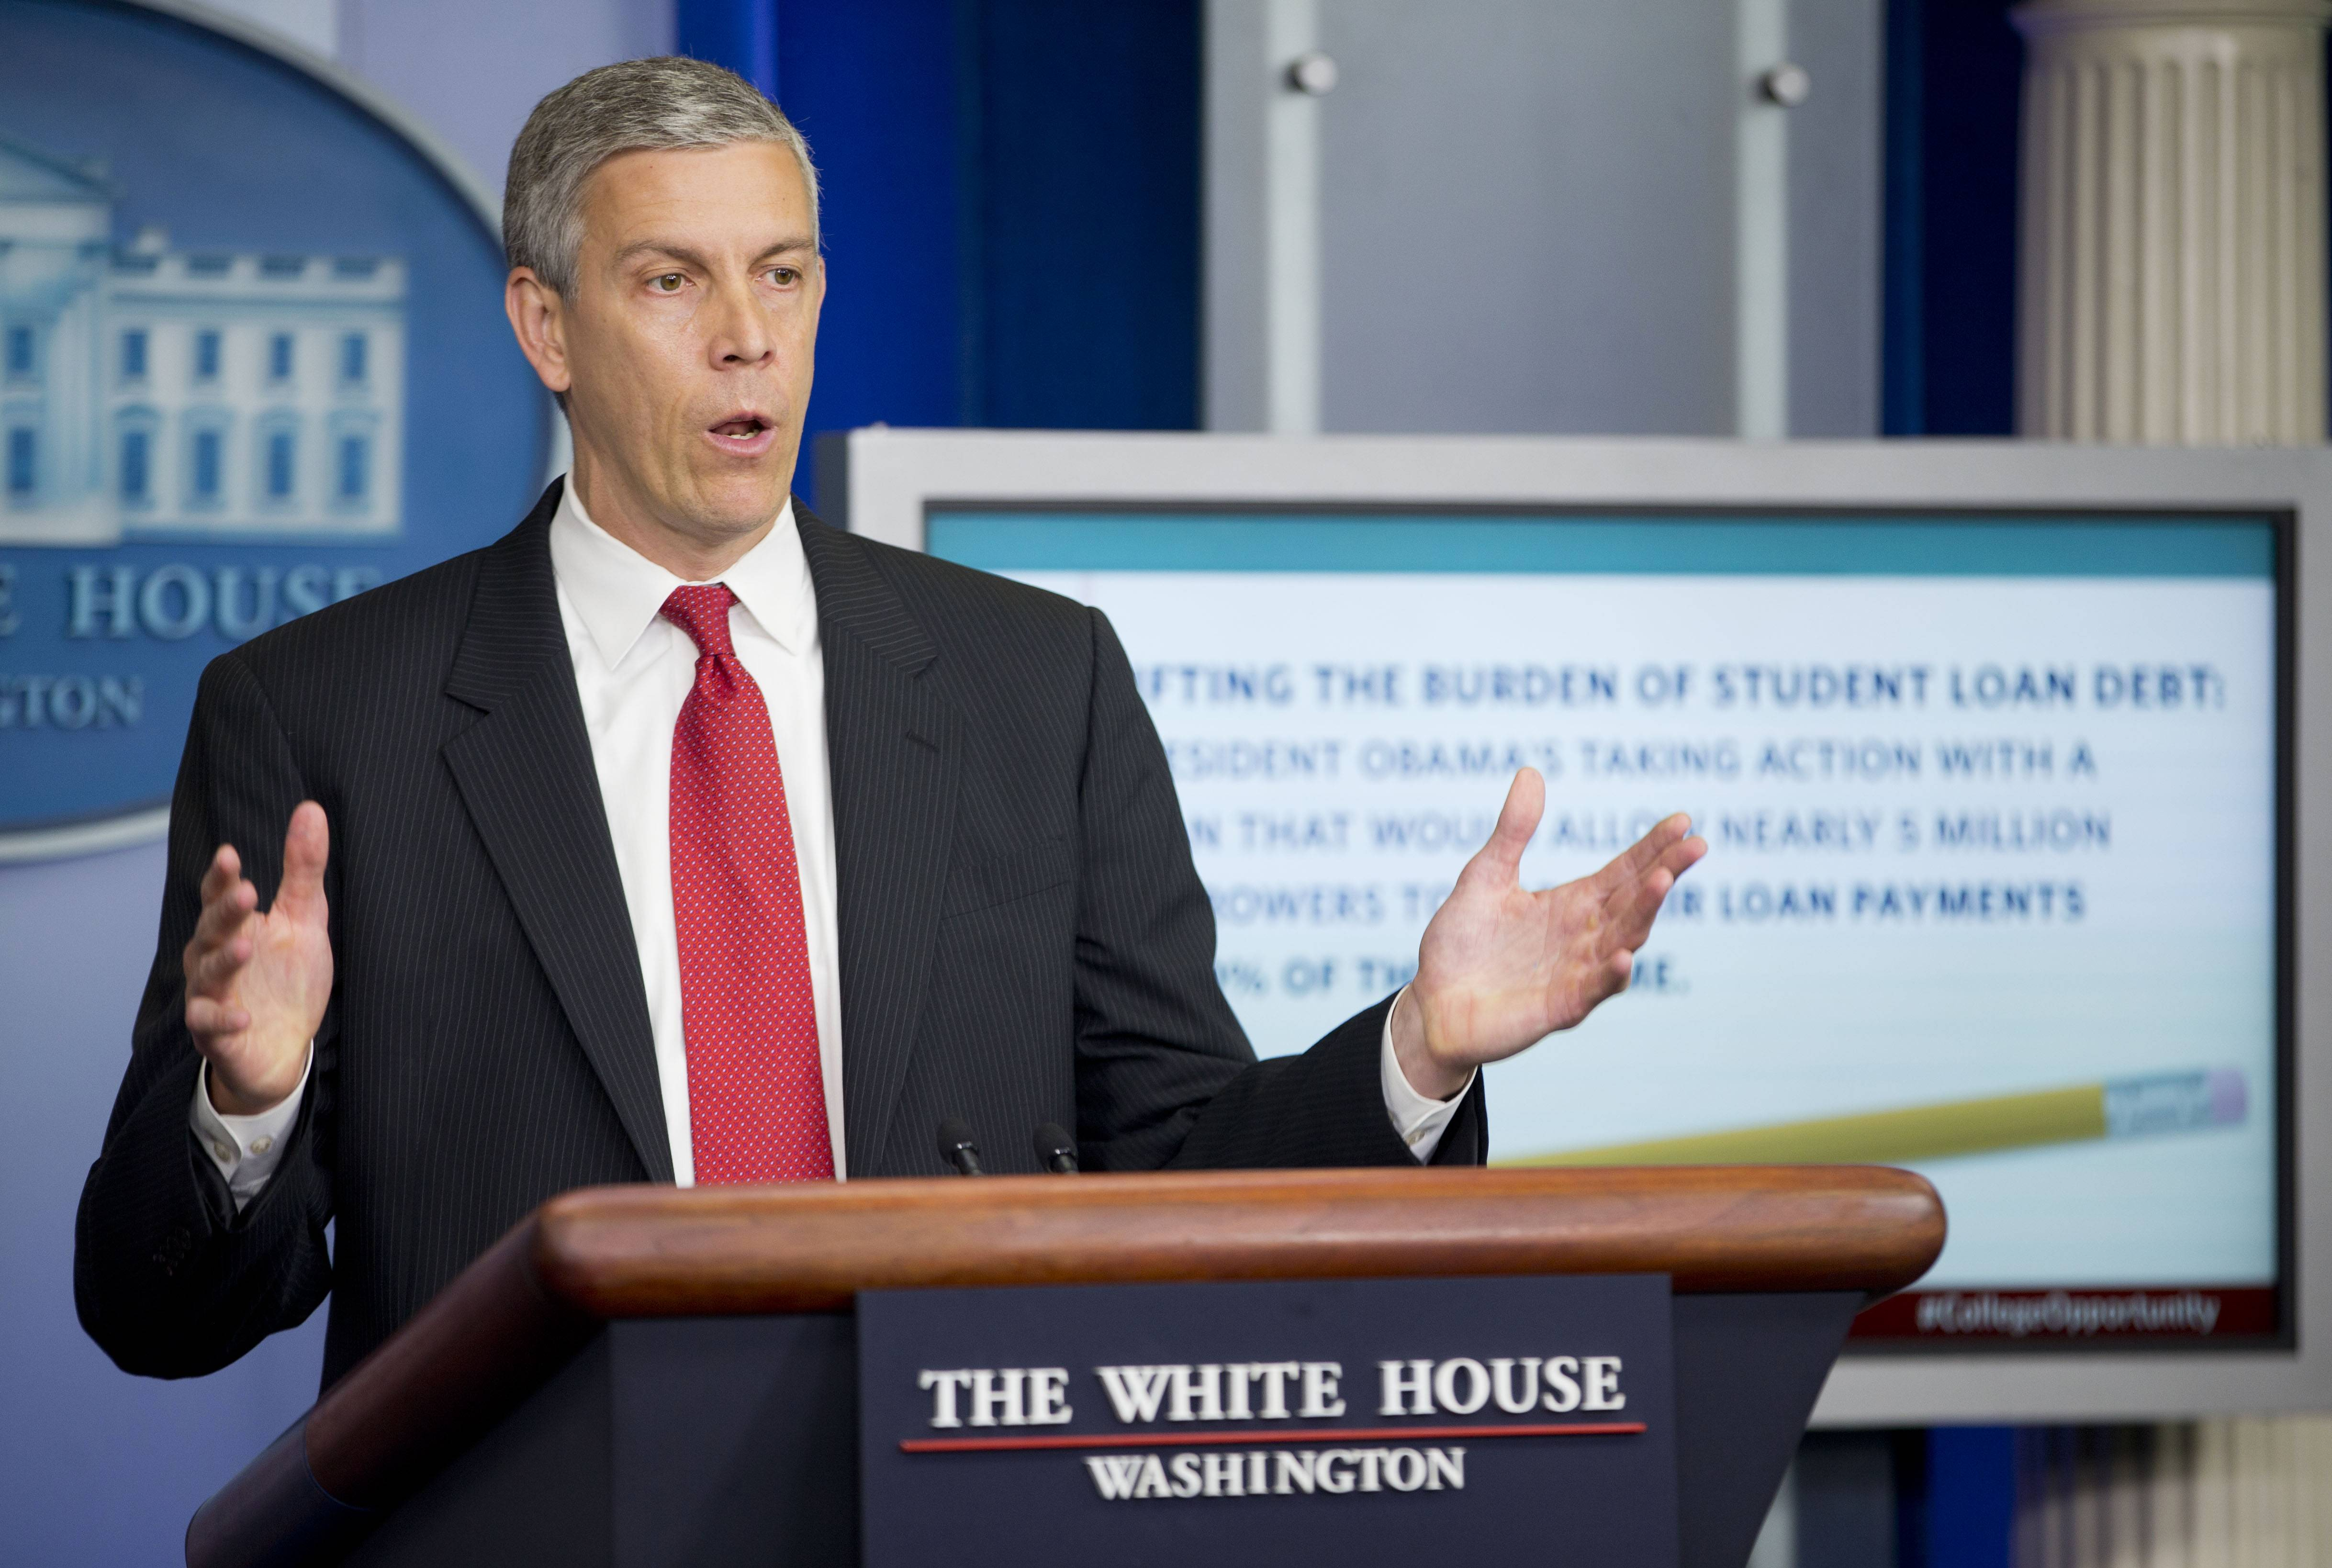 Education Secretary Arne Duncan speaks to members of the media in the Brady Press Briefing room of the White House in Washington, Monday, June 9, 2014. President Obama signed a Presidential Memorandum on reducing the burden of student loan debt, said the rising costs of college have left America's middle class feeling trapped. He says no hardworking youngster in America should be priced out of a higher education. Obama signed a presidential memorandum he says could help an additional 5 million borrowers.